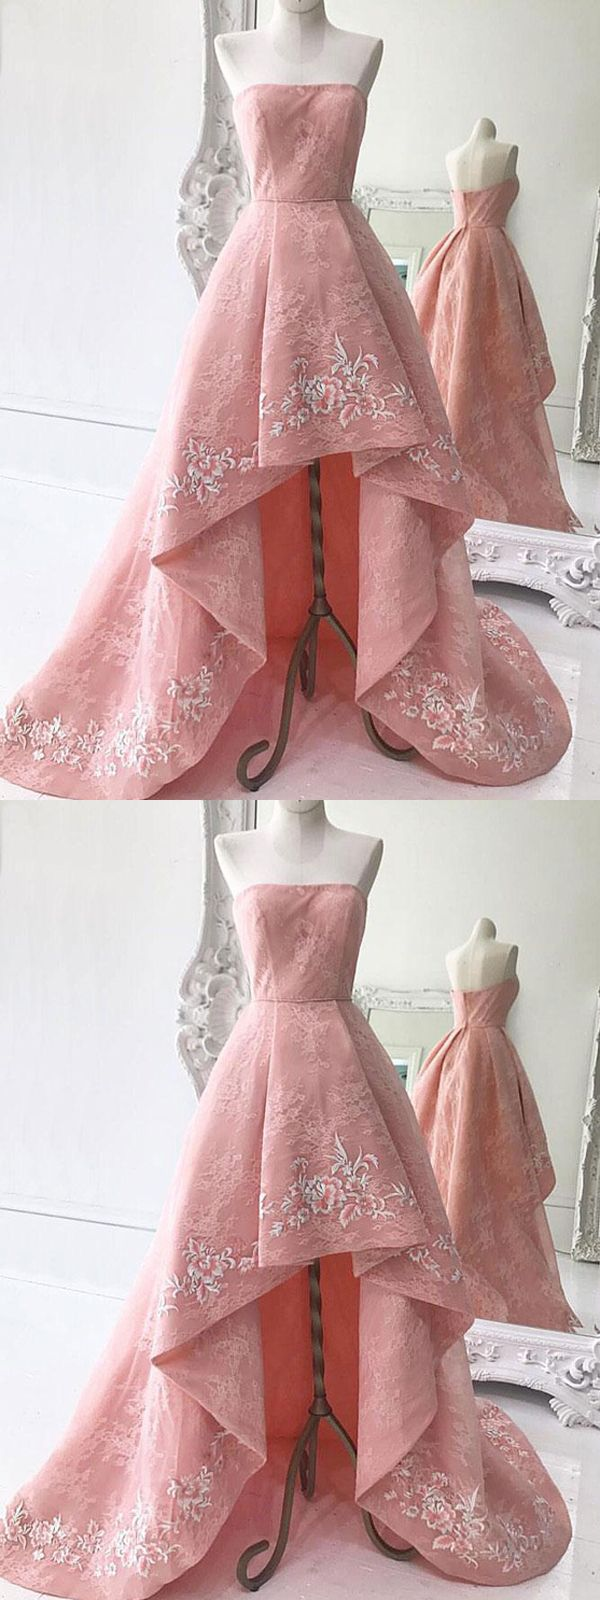 Pink prom dress aline strapless asymmetrical lace appliques prom